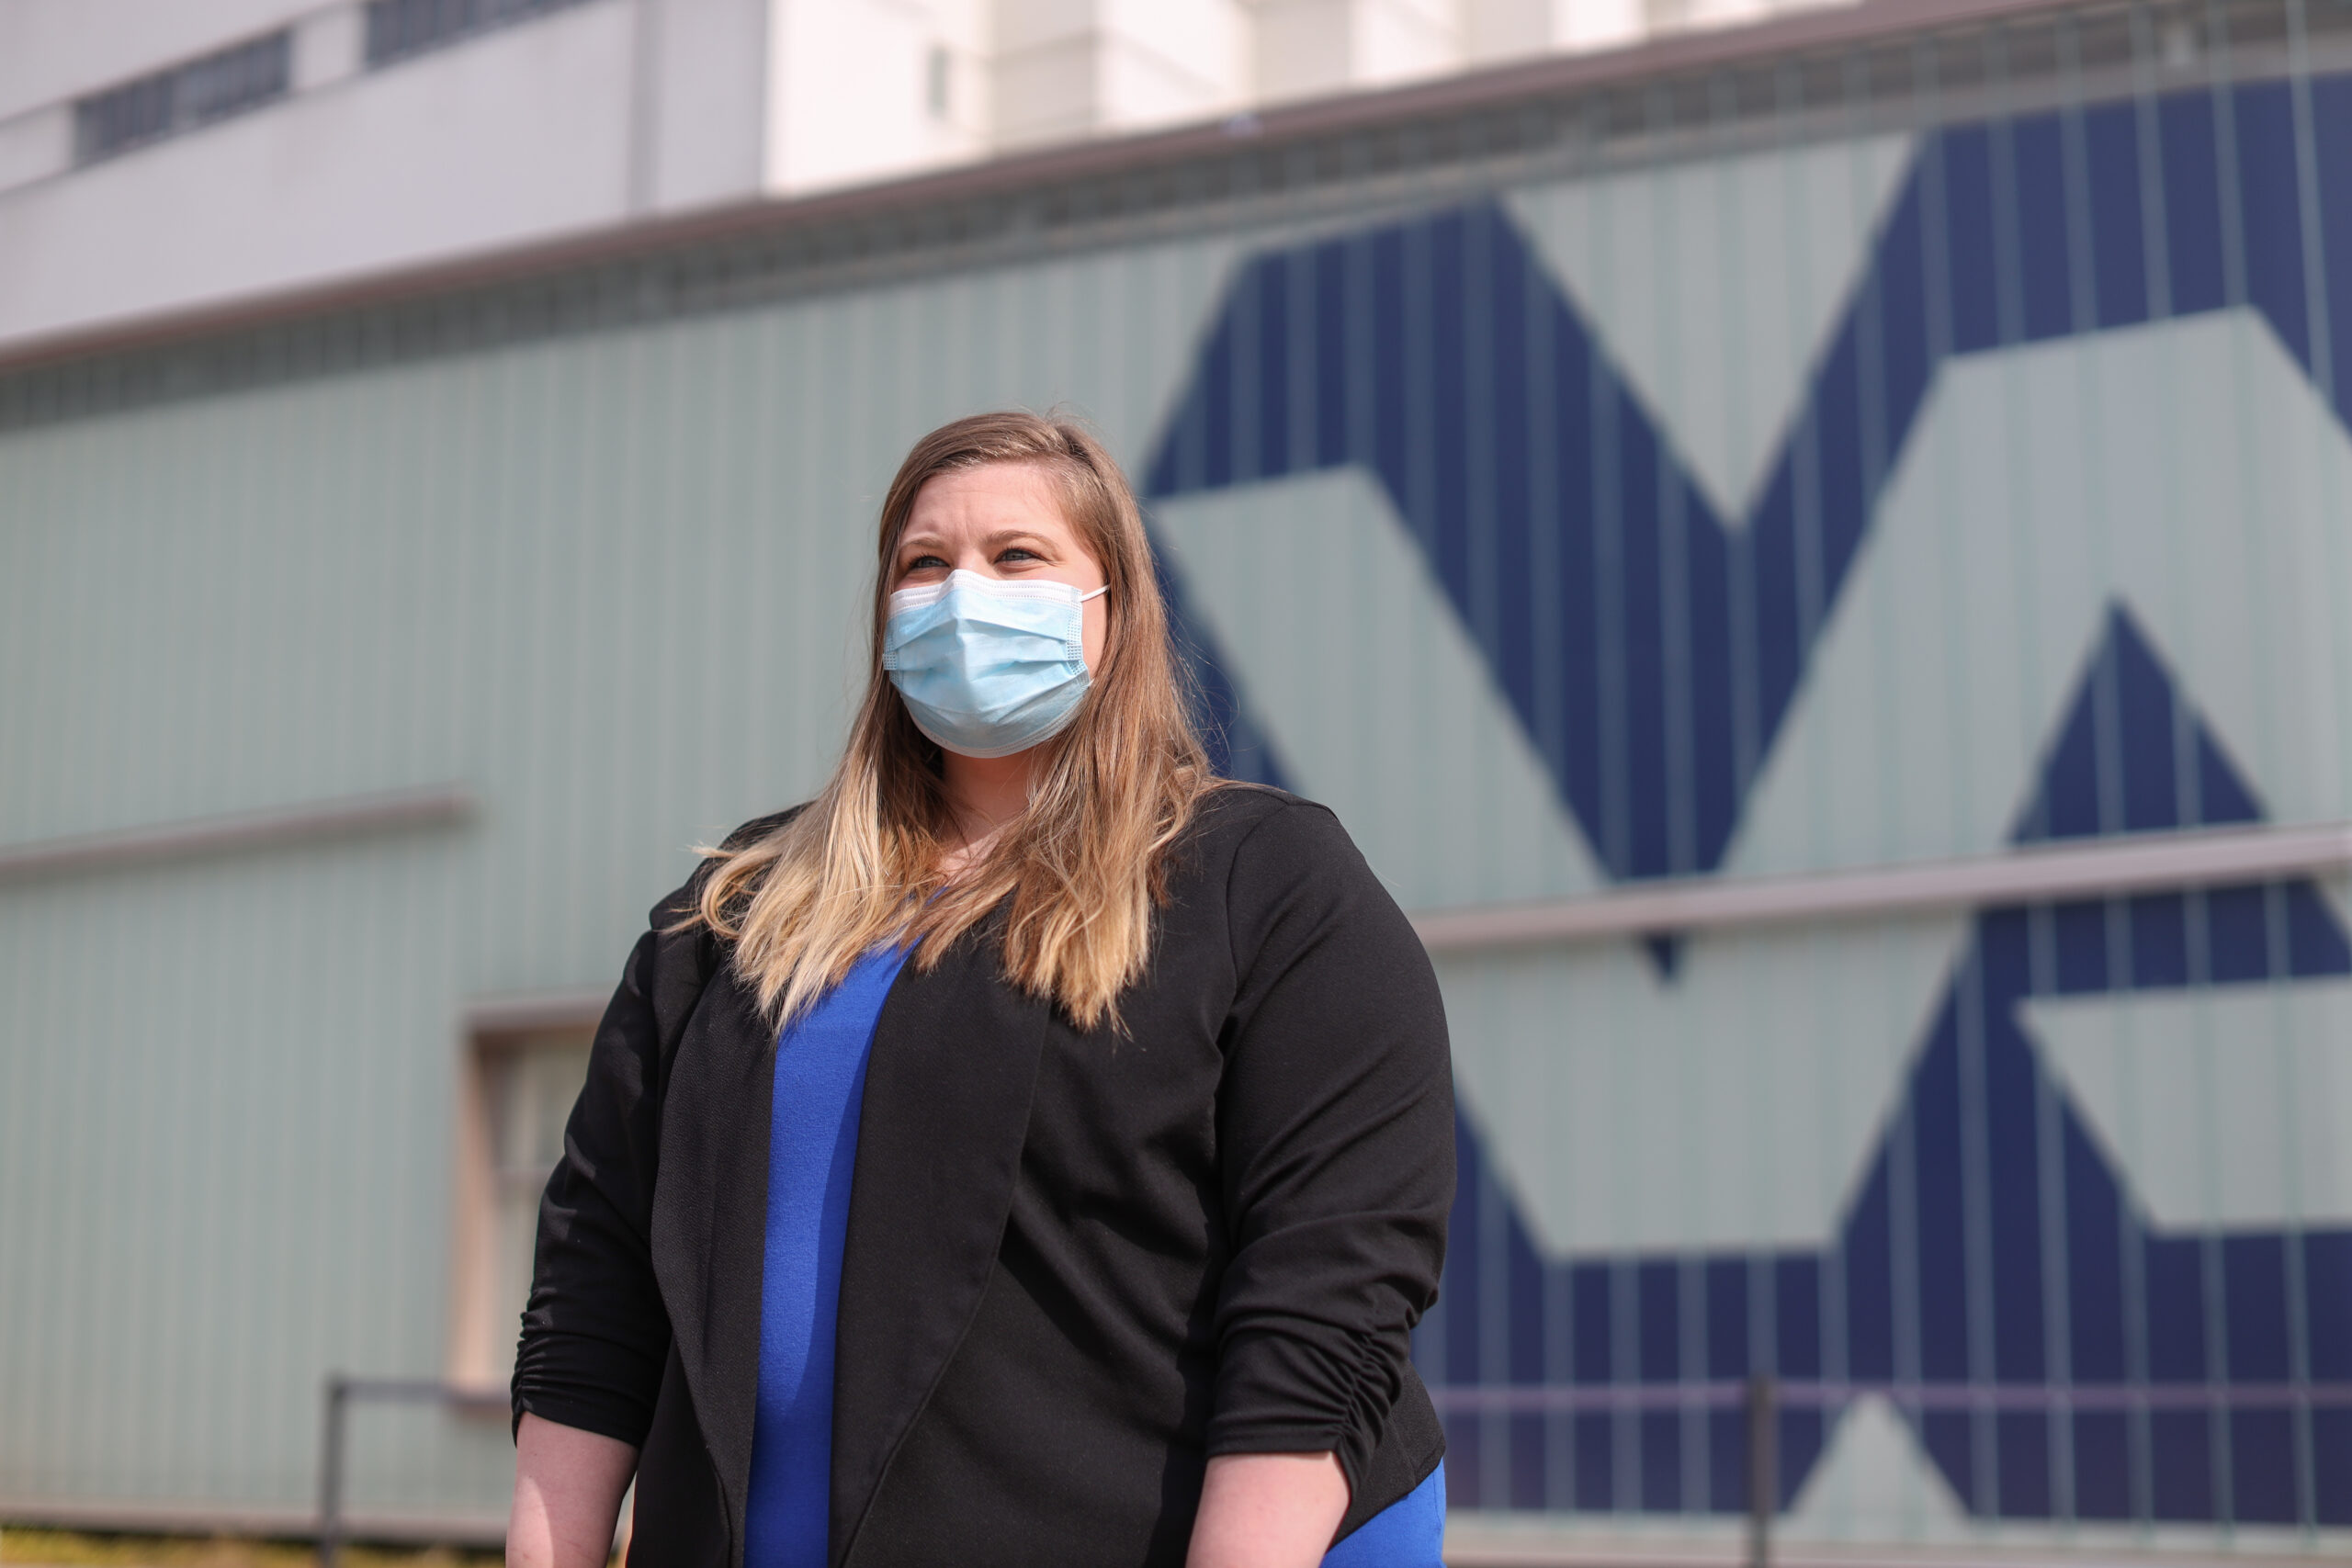 http://Katherine%20wearing%20a%20black%20sweater%20and%20blue%20shirt,%20and%20wearing%20a%20face%20mask%20standing%20outside%20with%20a%20building%20behind%20her